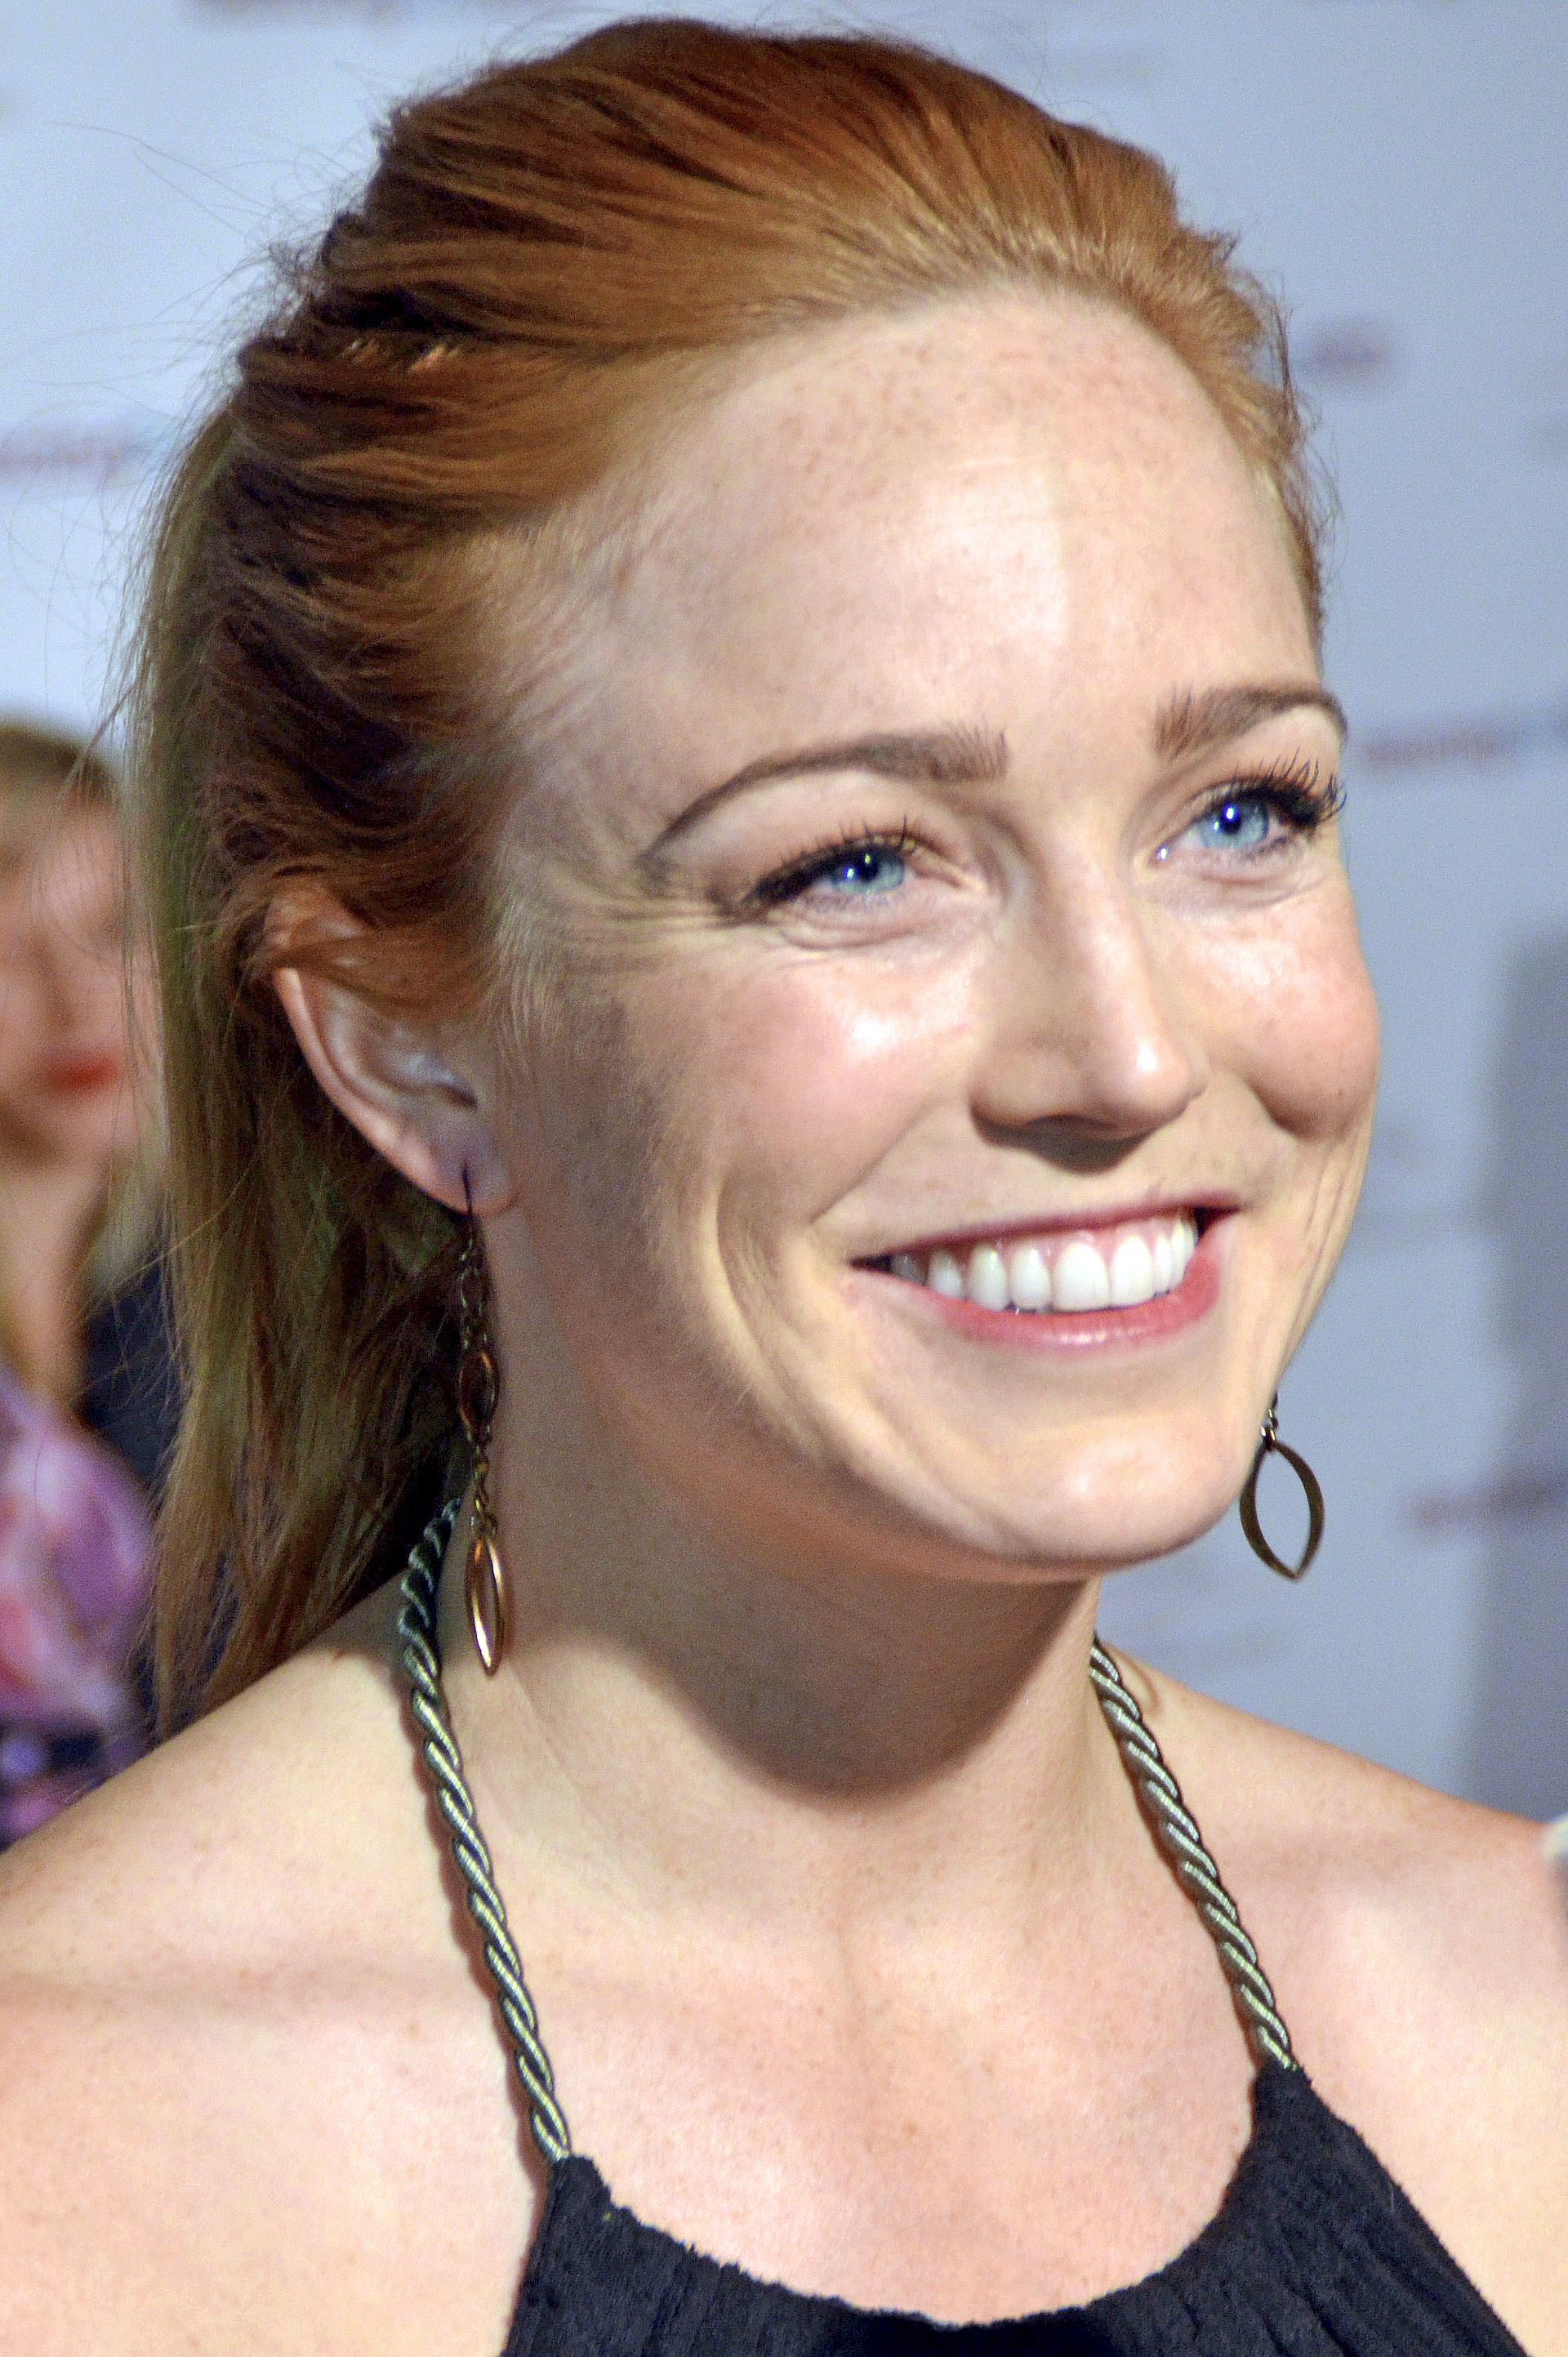 Photo of Caity Lotz: American actress